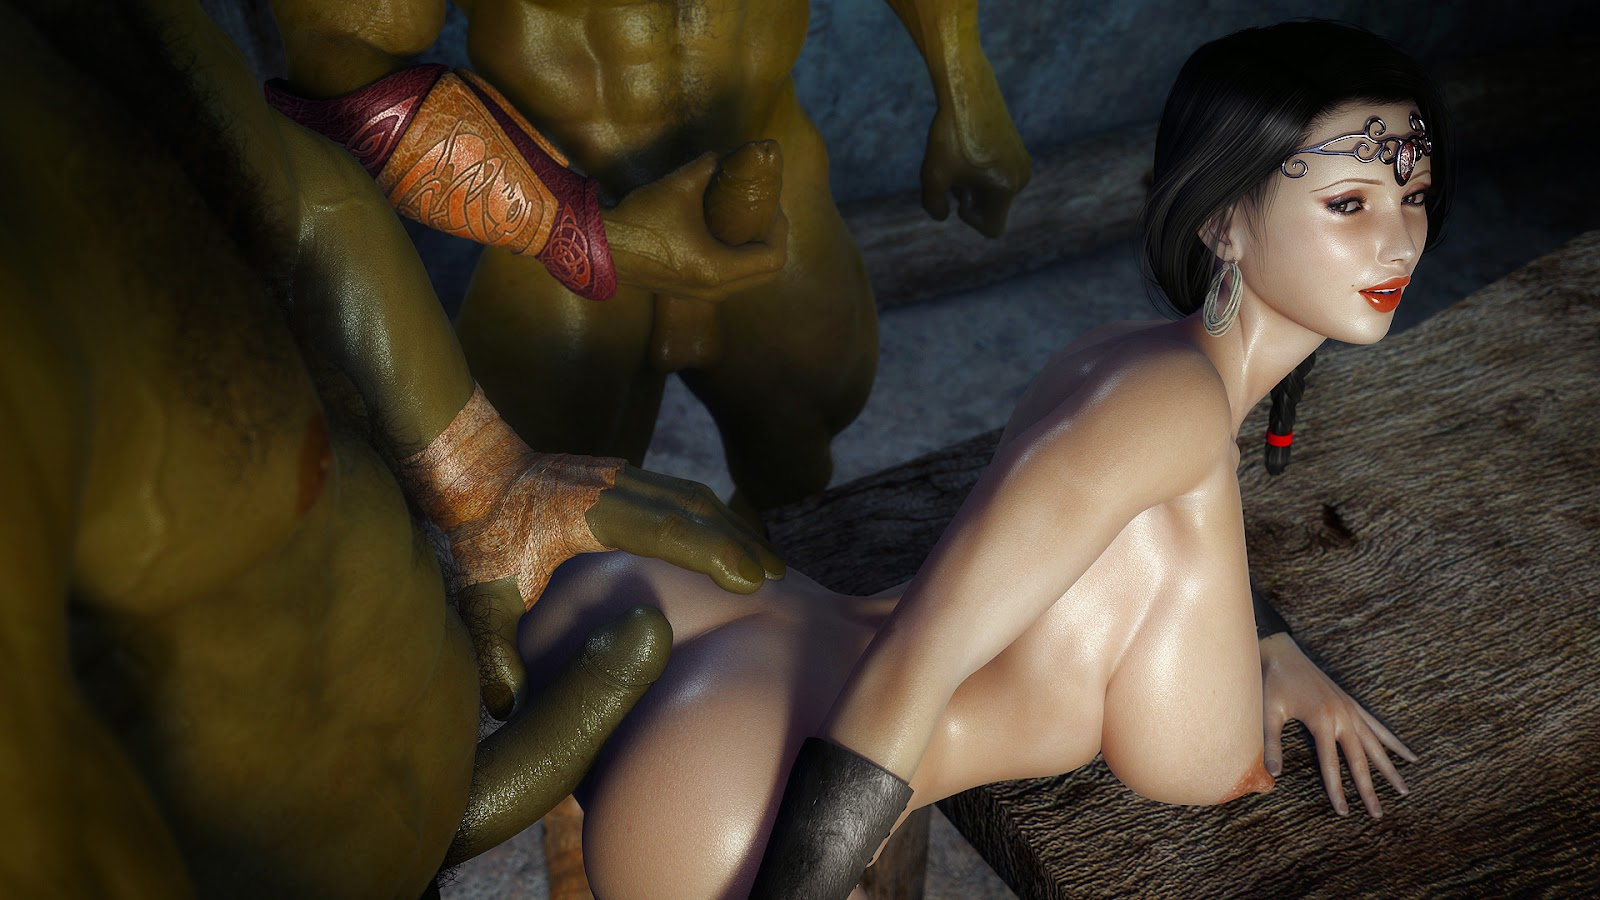 Secret of beauty orc ritual 5